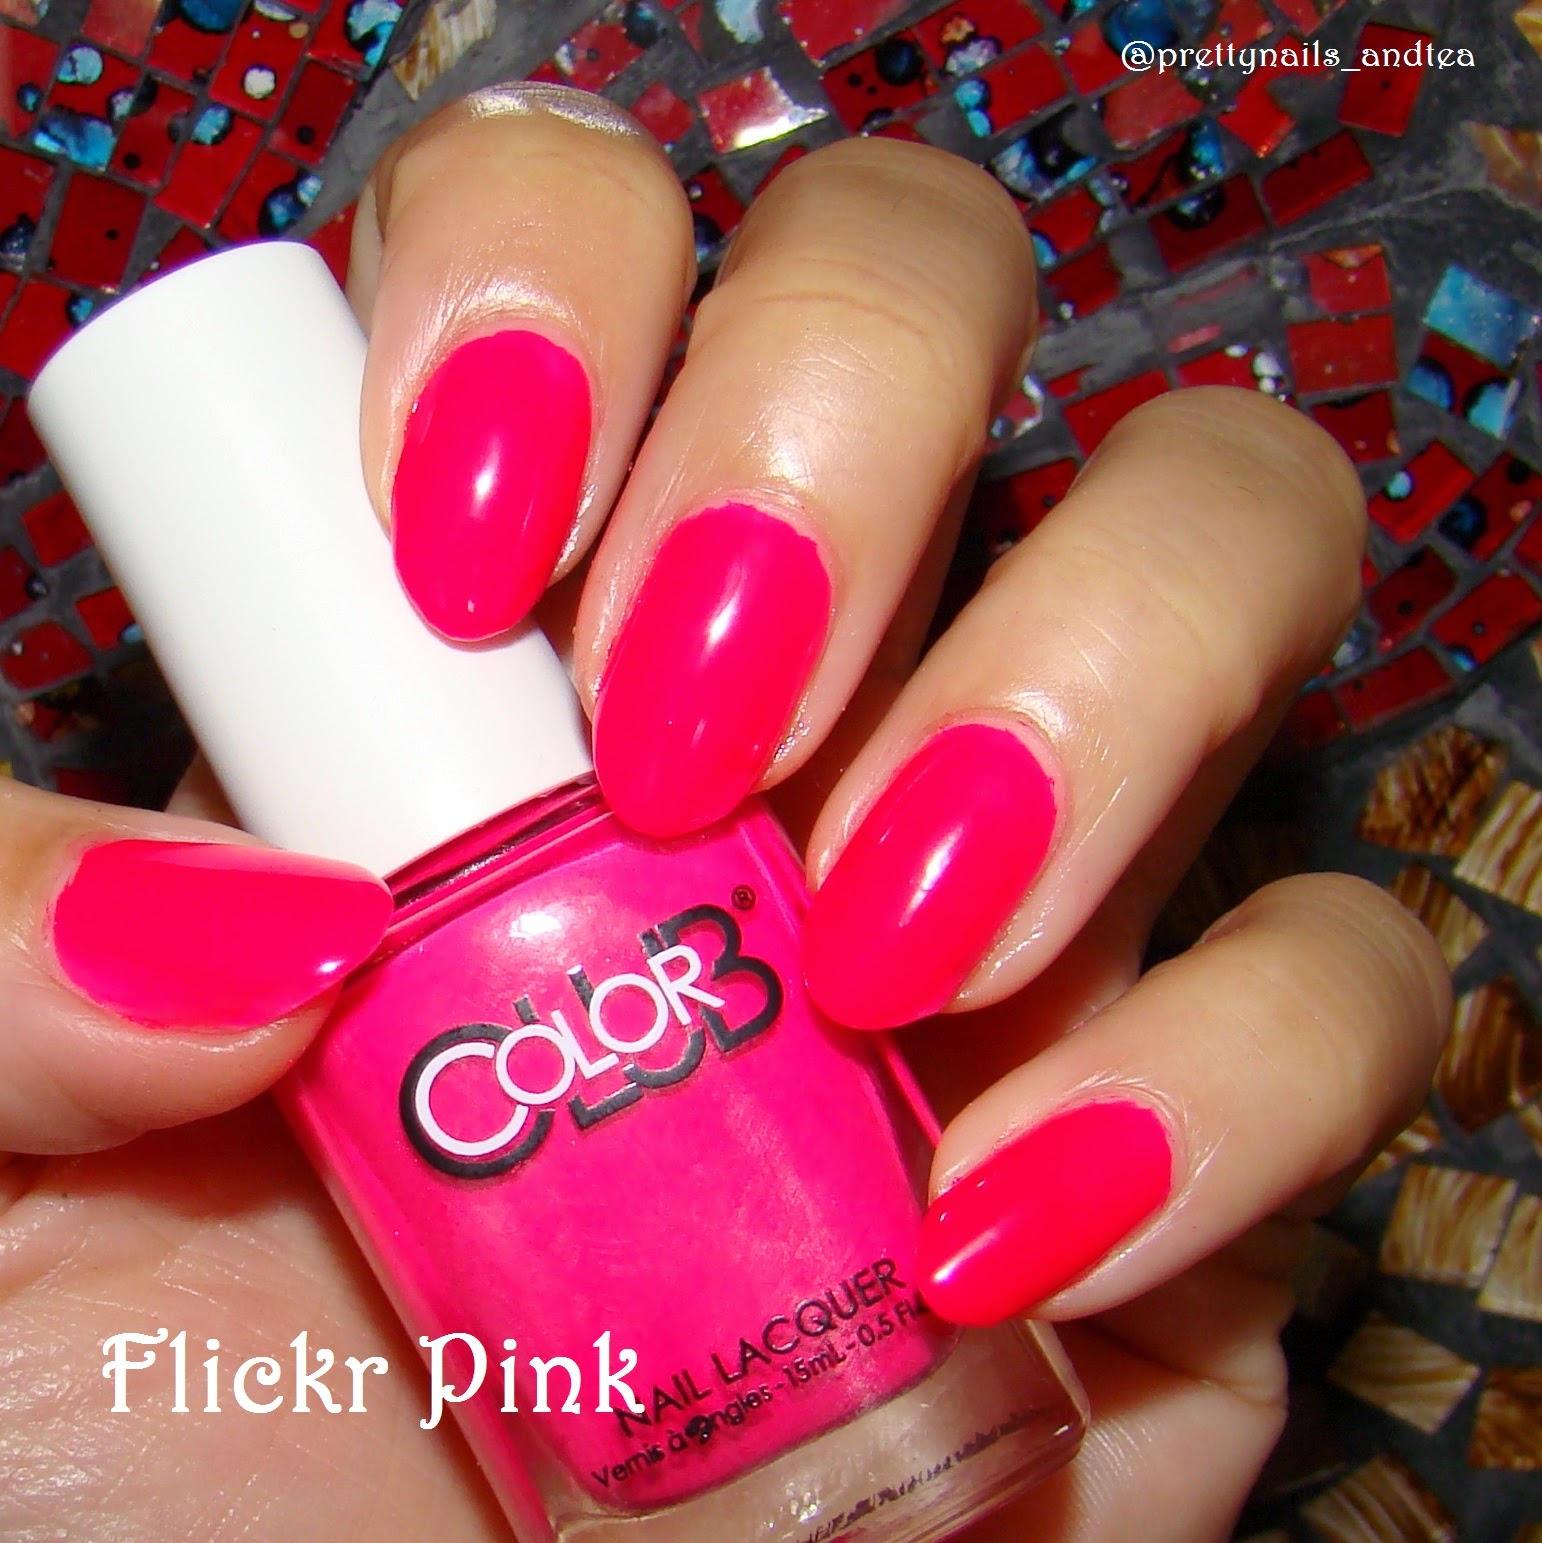 flckr pink color club yahoo